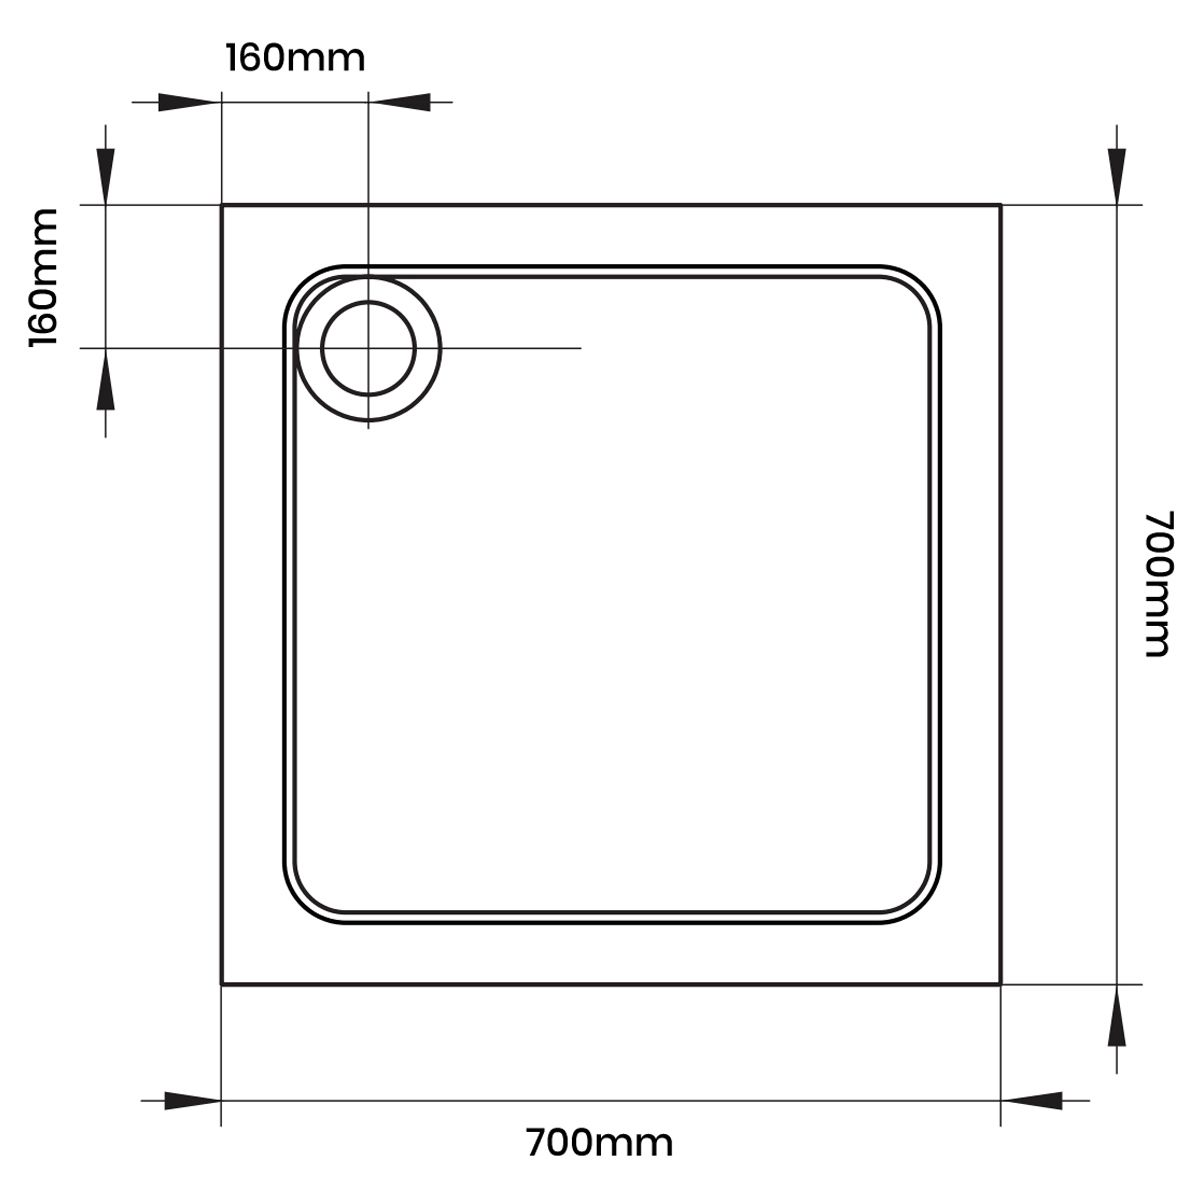 Aquadart Square 700 x 700 Shower Tray